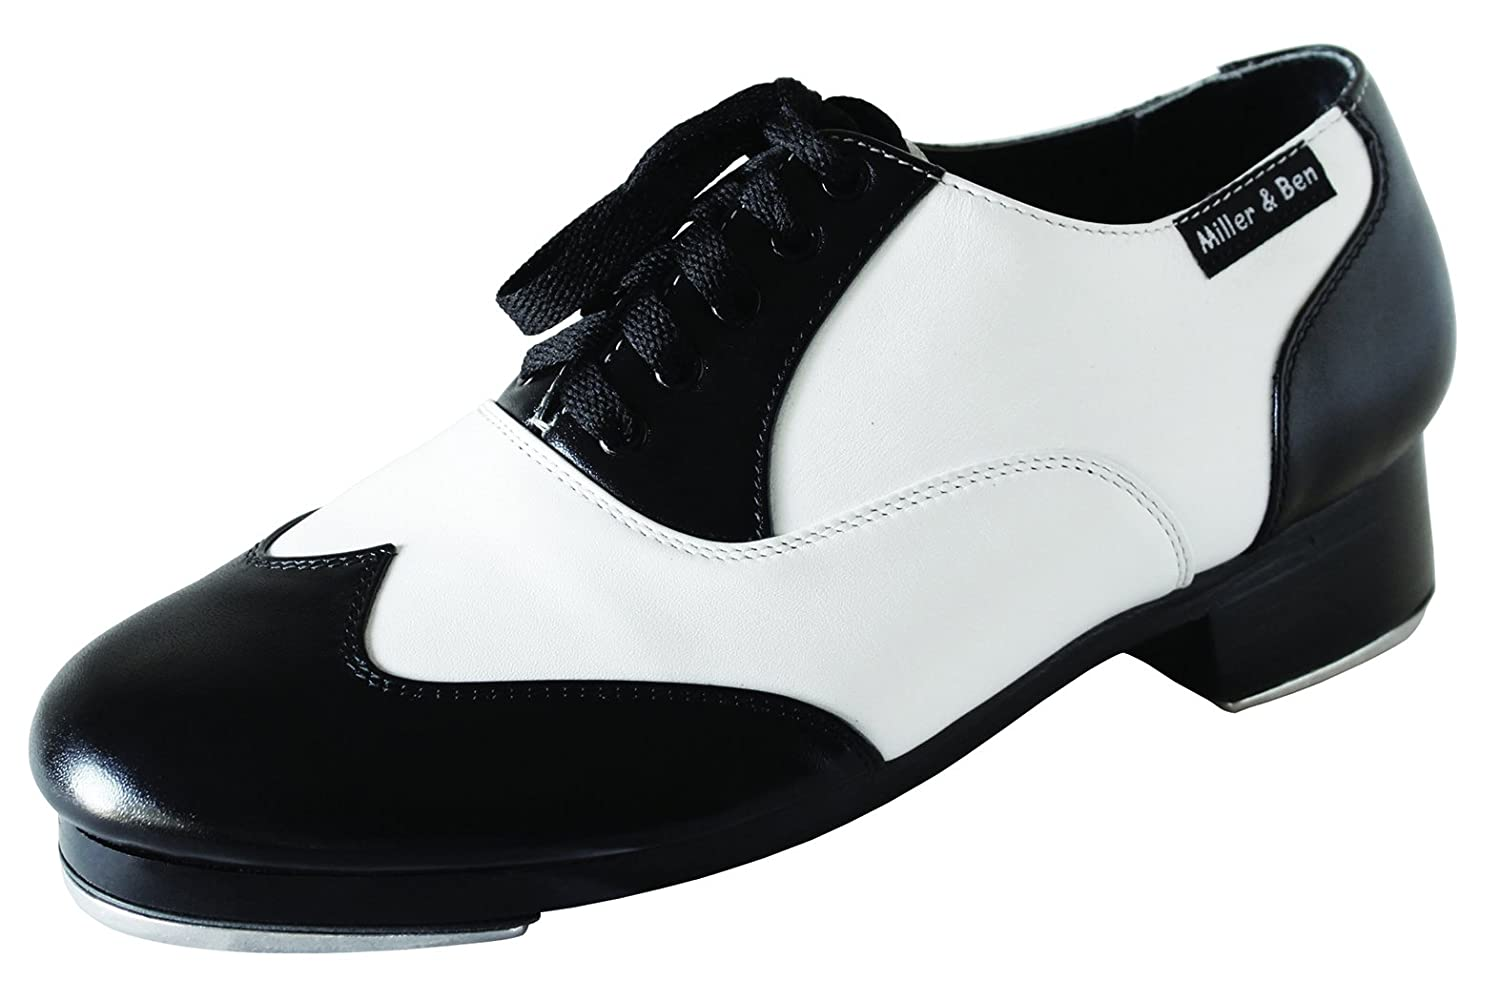 1920s Shoes for UK – T-Bar, Oxfords, Flats Miller & Ben Tap Shoes Jazz-Tap Master Black & White - STANDARD SIZES $285.00 AT vintagedancer.com